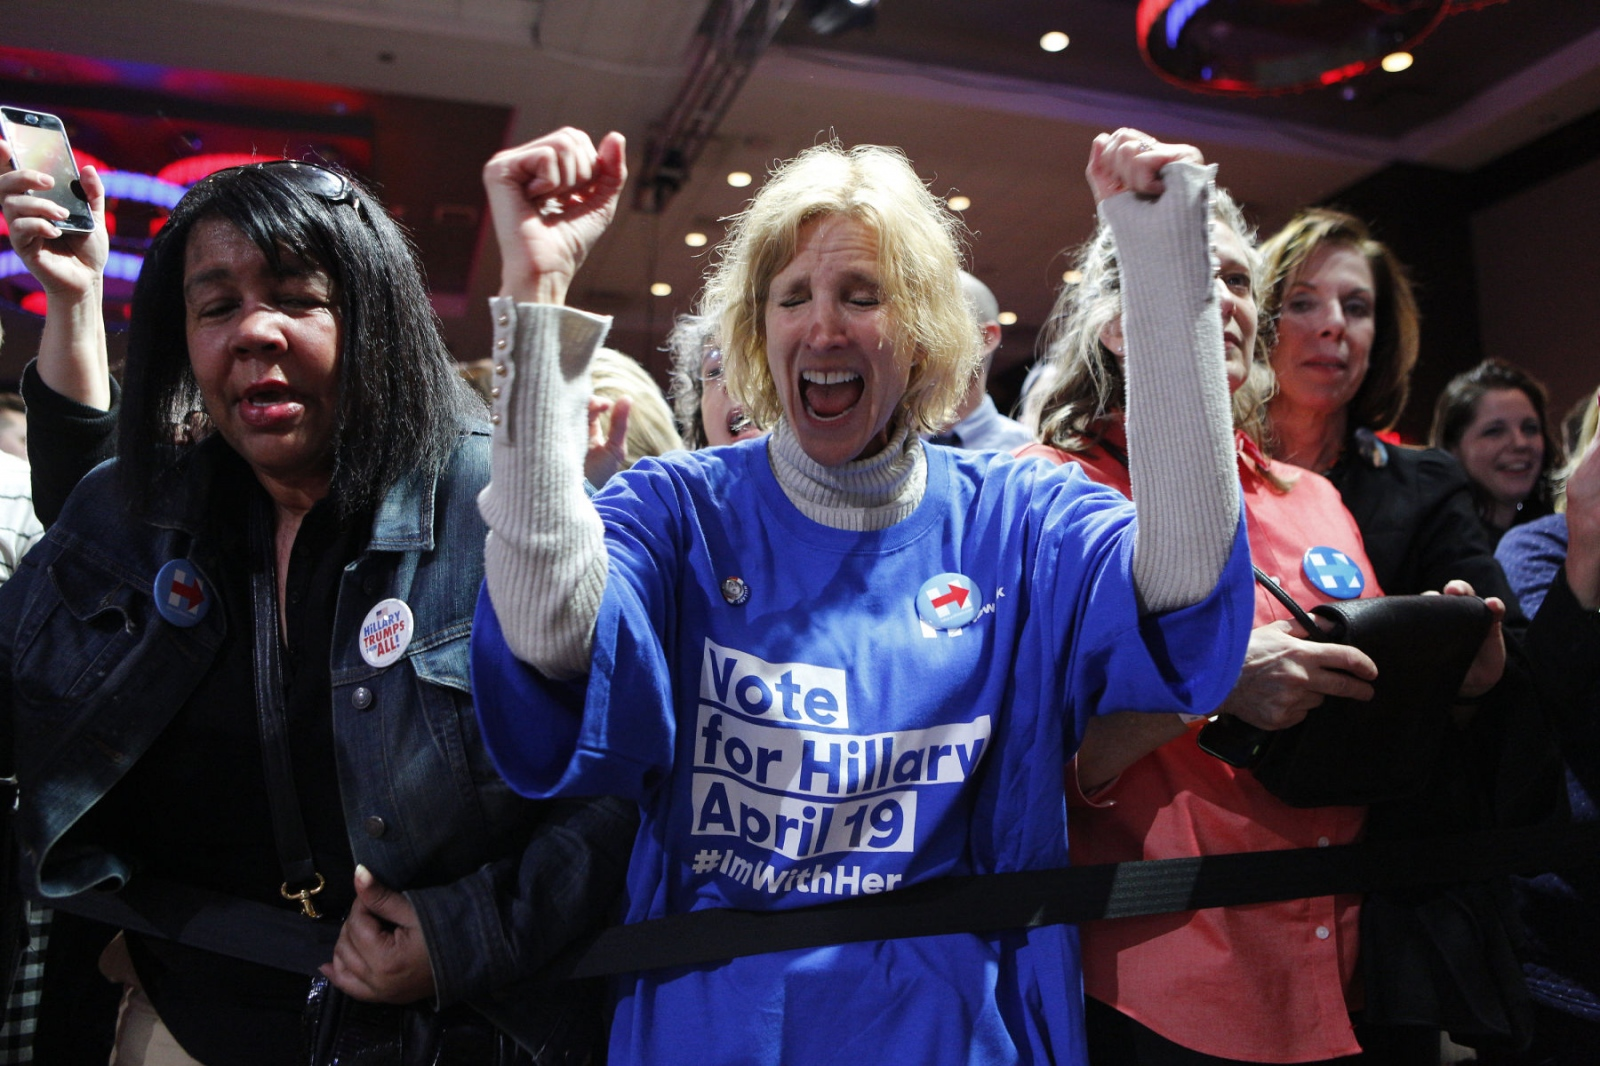 Supporters of Democratic Presidential candidate Hillary Rodham Clinton at her last rally in New York City, where she claimed victory tonight, over rival Presidential candidate Bernie Sanders with 60% of the voters over BernieԳ 40% registered voters in the New York Primaries. Kevin C. Downs/ Cosmos